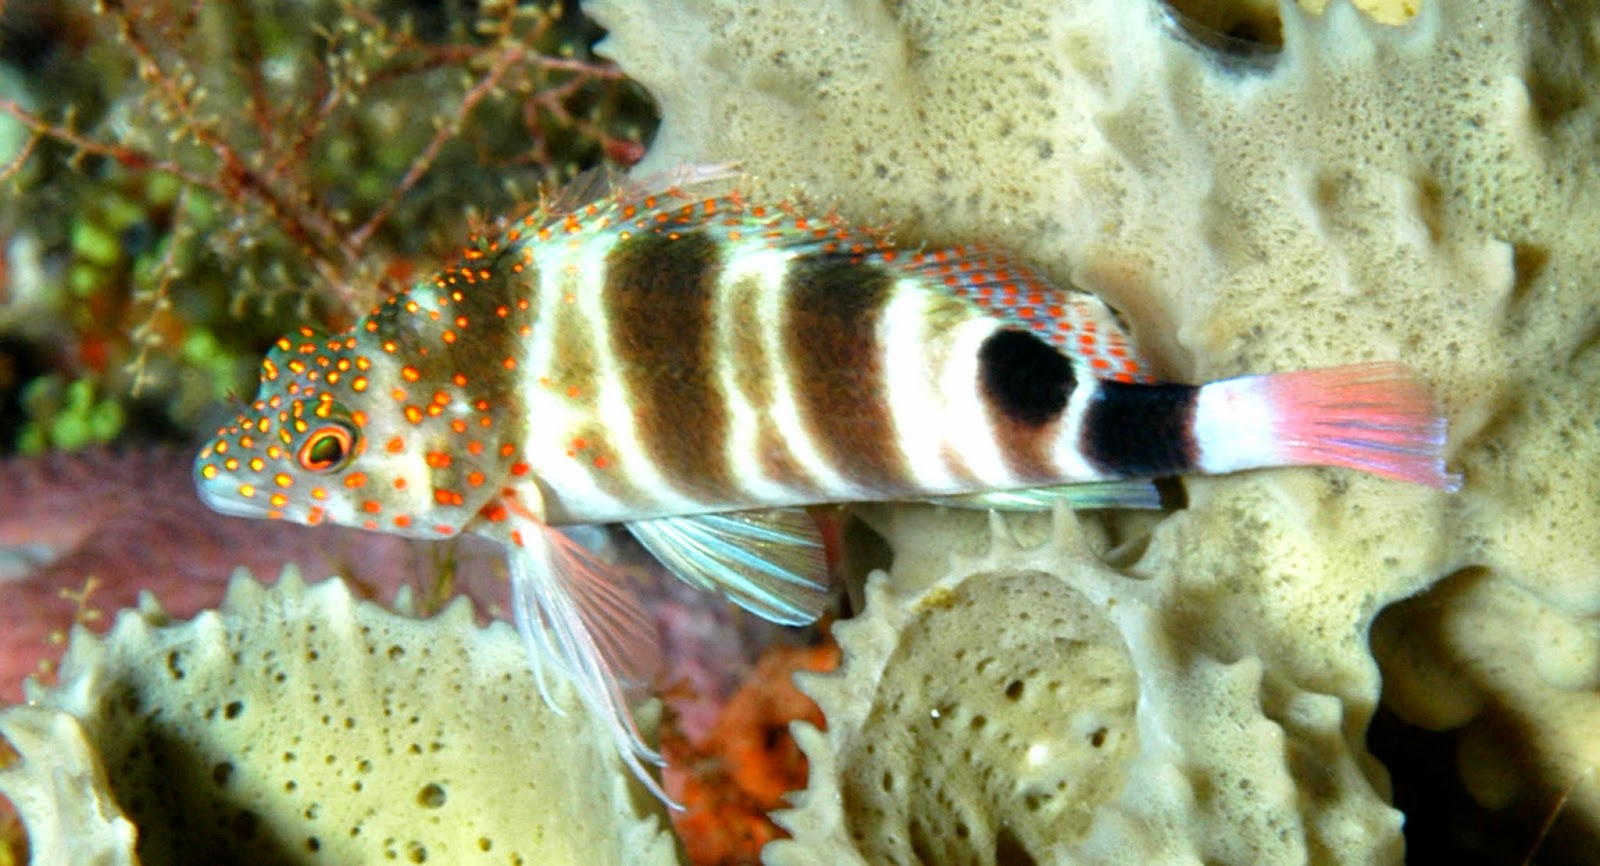 http://fishshare.blogspot.com/2015/01/hawkfishes-pictures-6.html